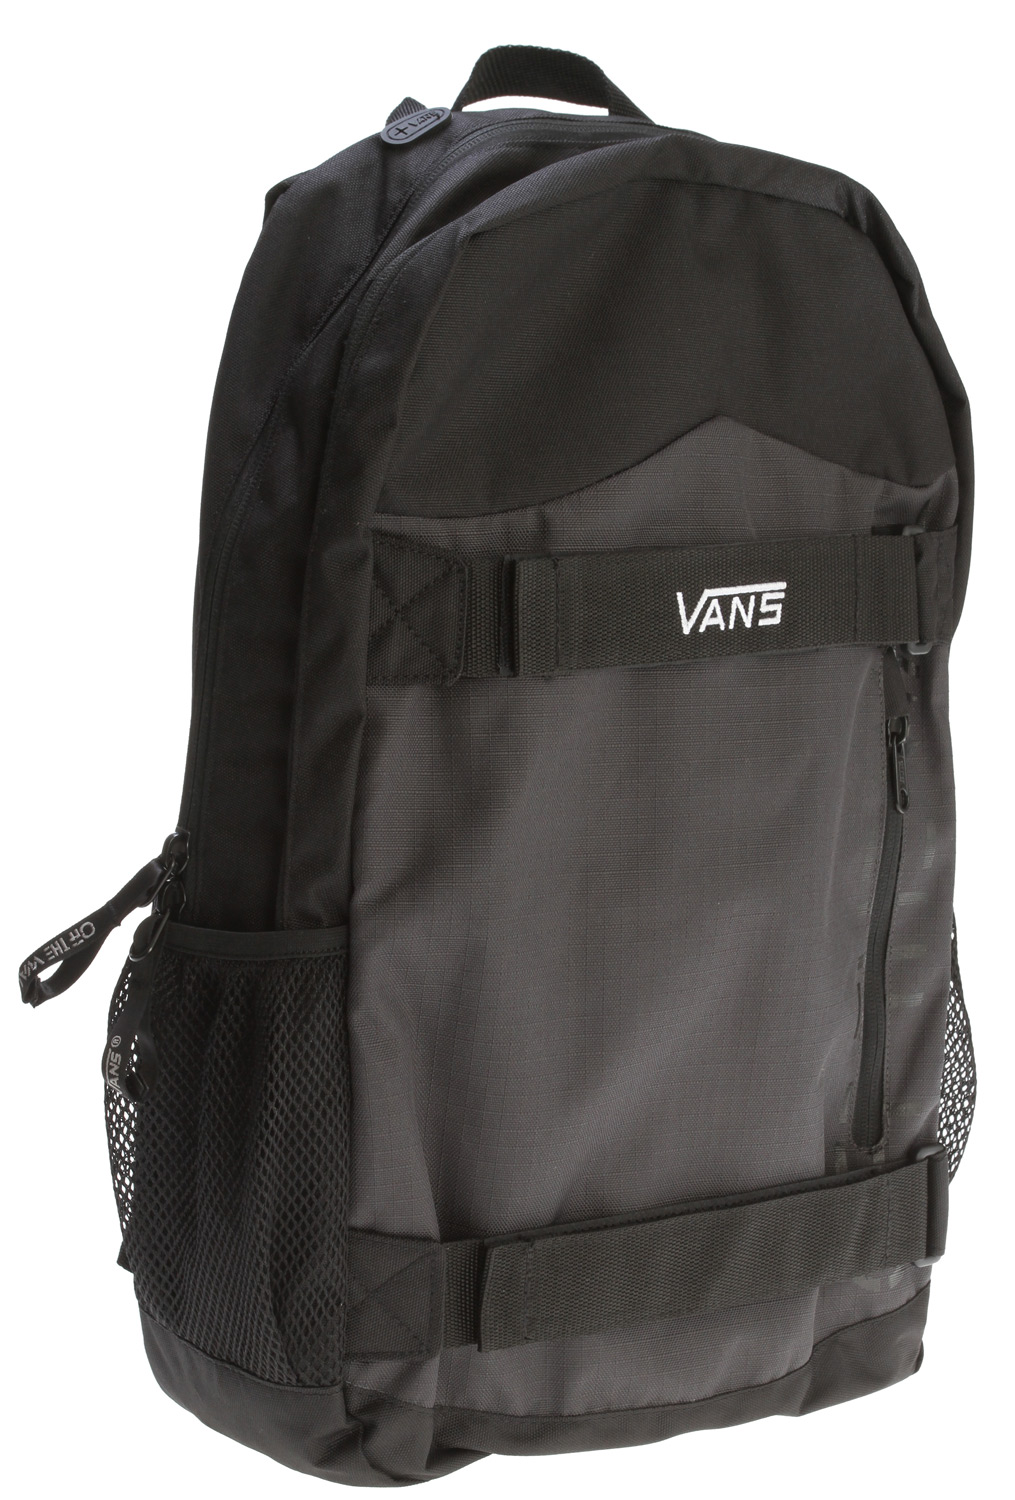 "Skateboard Key Features of the Vans Authentic Backpack: 600D Poly solid & ripstop, 2x PU-backed fabric - Front skate straps with VELCRO closures - Neoprene pocket with custom audio port - 600D padded back panel with waffle quilt stitching - Side mesh pockets - Front stash pocket - Interior organization - Vans logo embroidered on skate strap - ""Off the Wall"" screen print on front panel - Logo zipper pulls - $28.95"